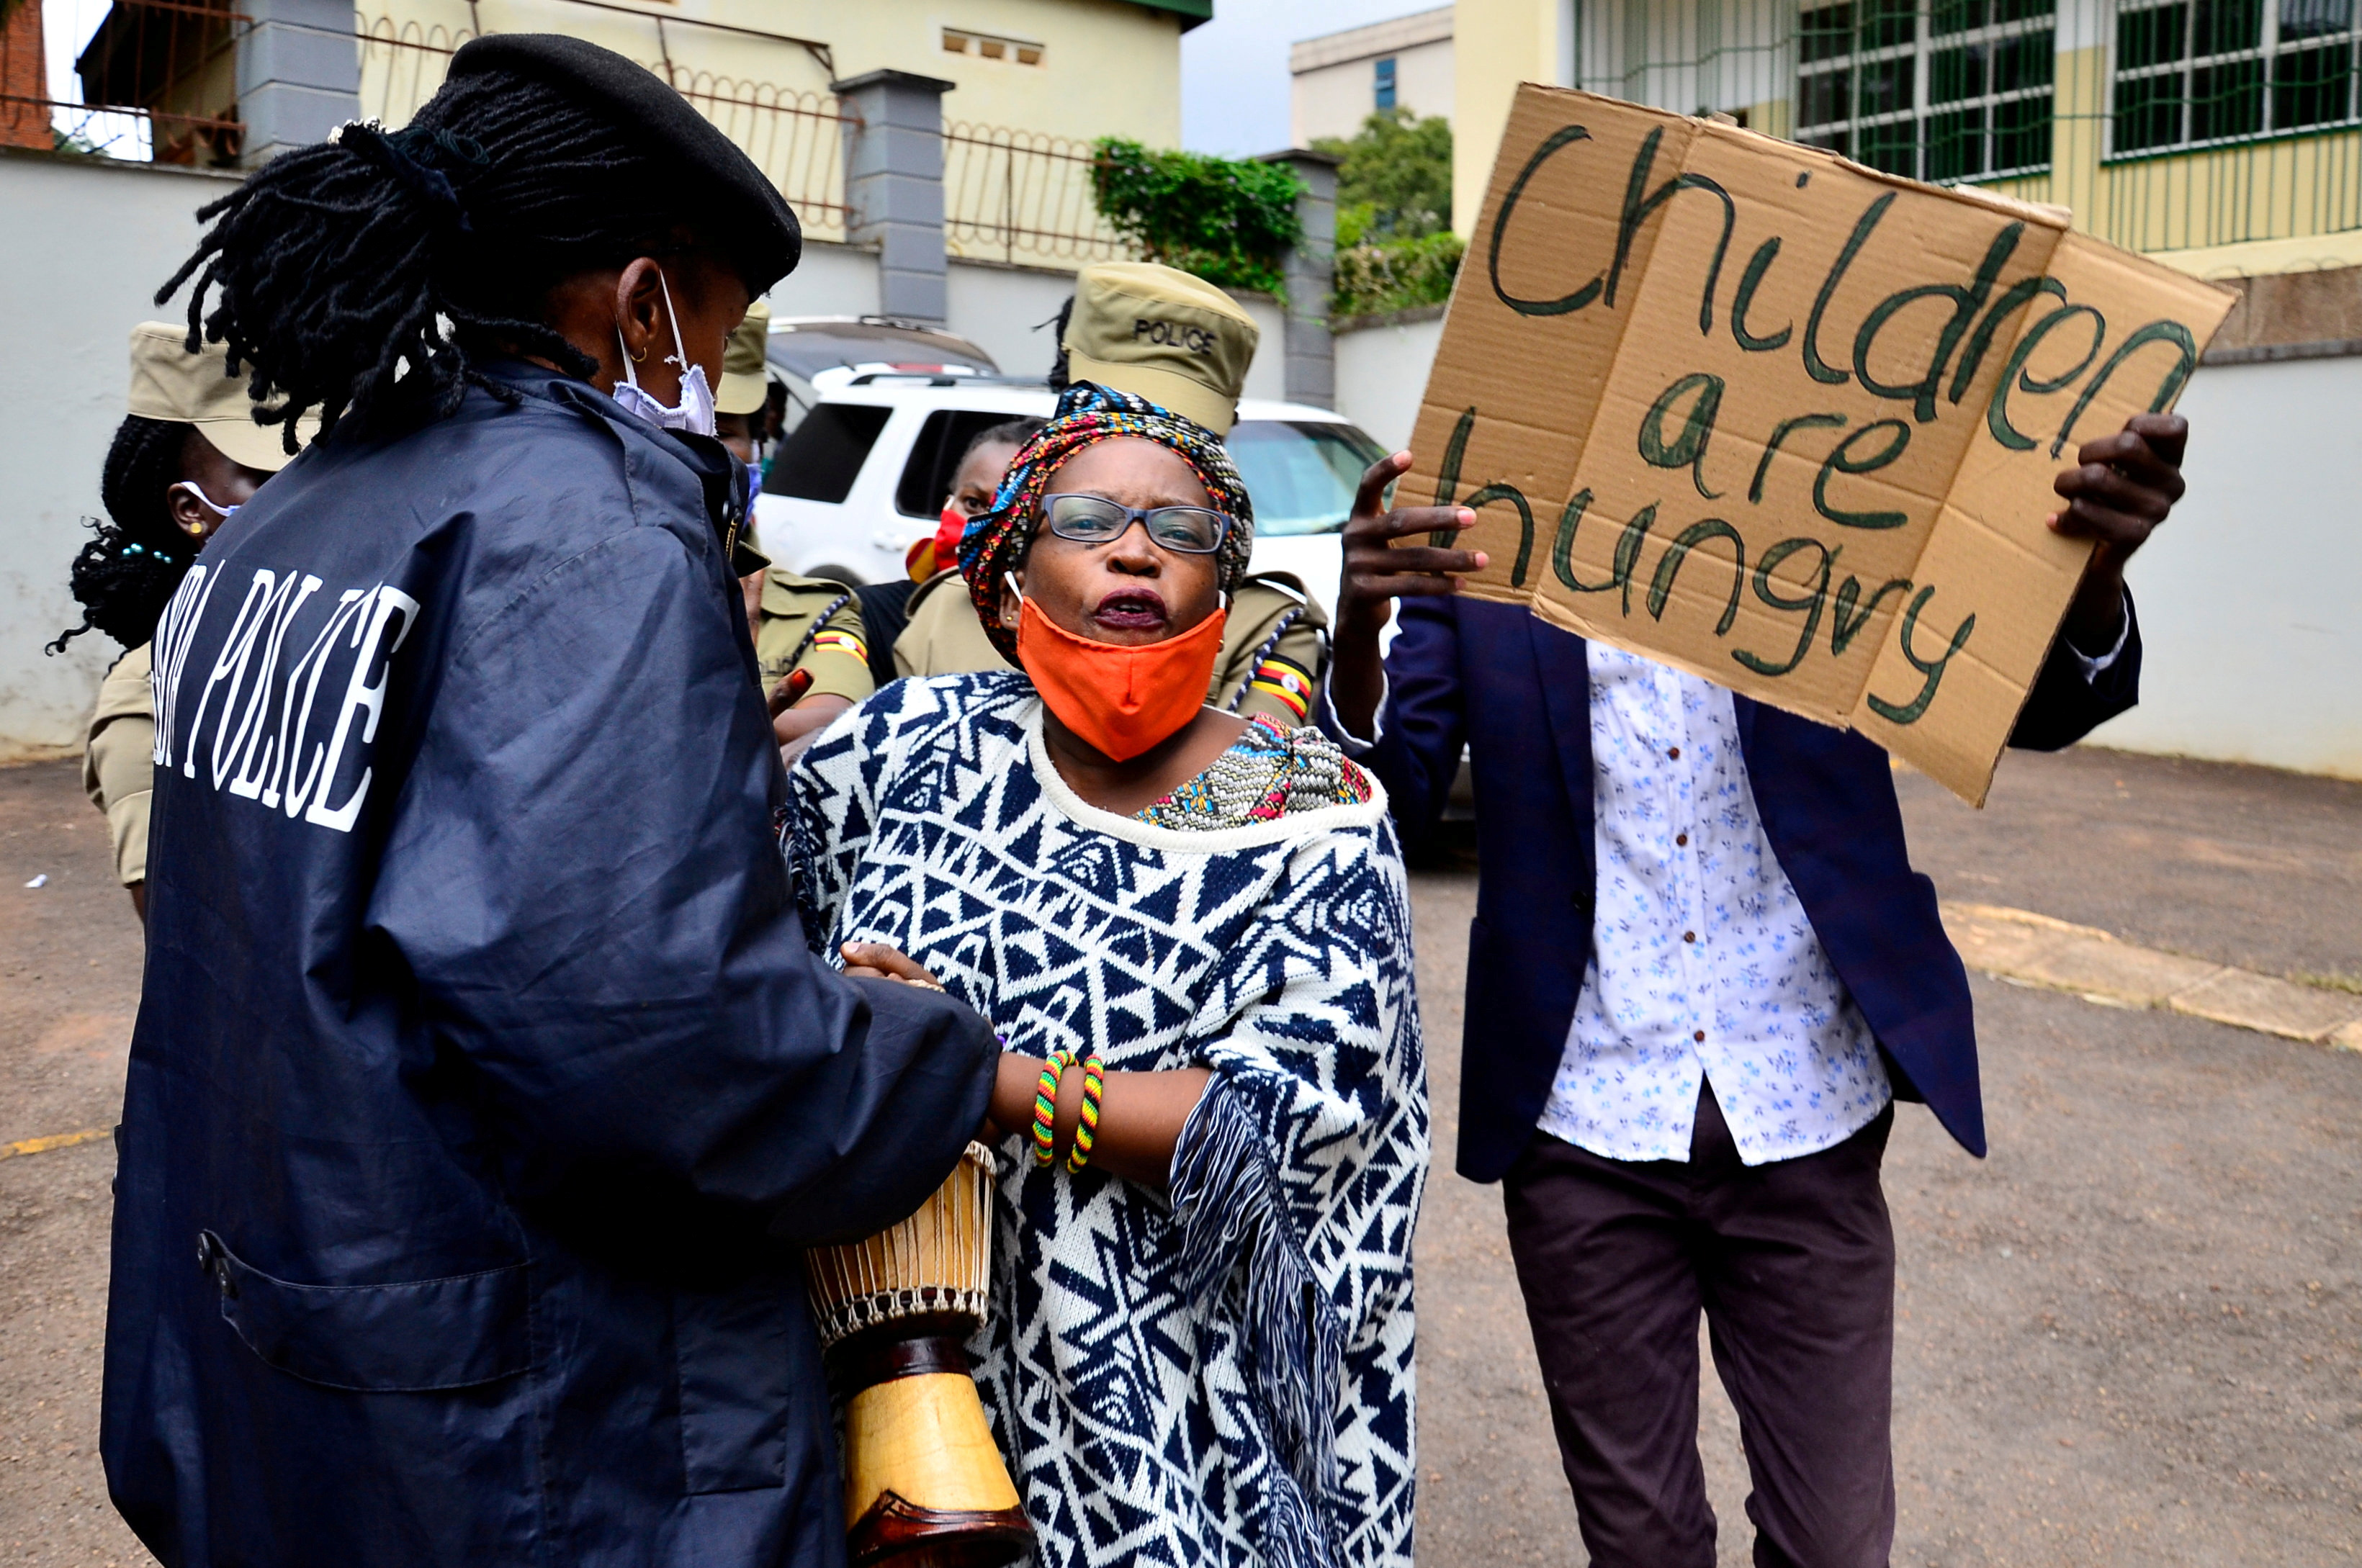 Ugandan academic Stella Nyanzi and activists protest against the way that government distributes the relief food and the lockdown situation to control the spread of the coronavirus disease (COVID-19) outbreak in Kampala, Uganda May 18, 2020. REUTERS/Abubaker Lubowa/File Photo